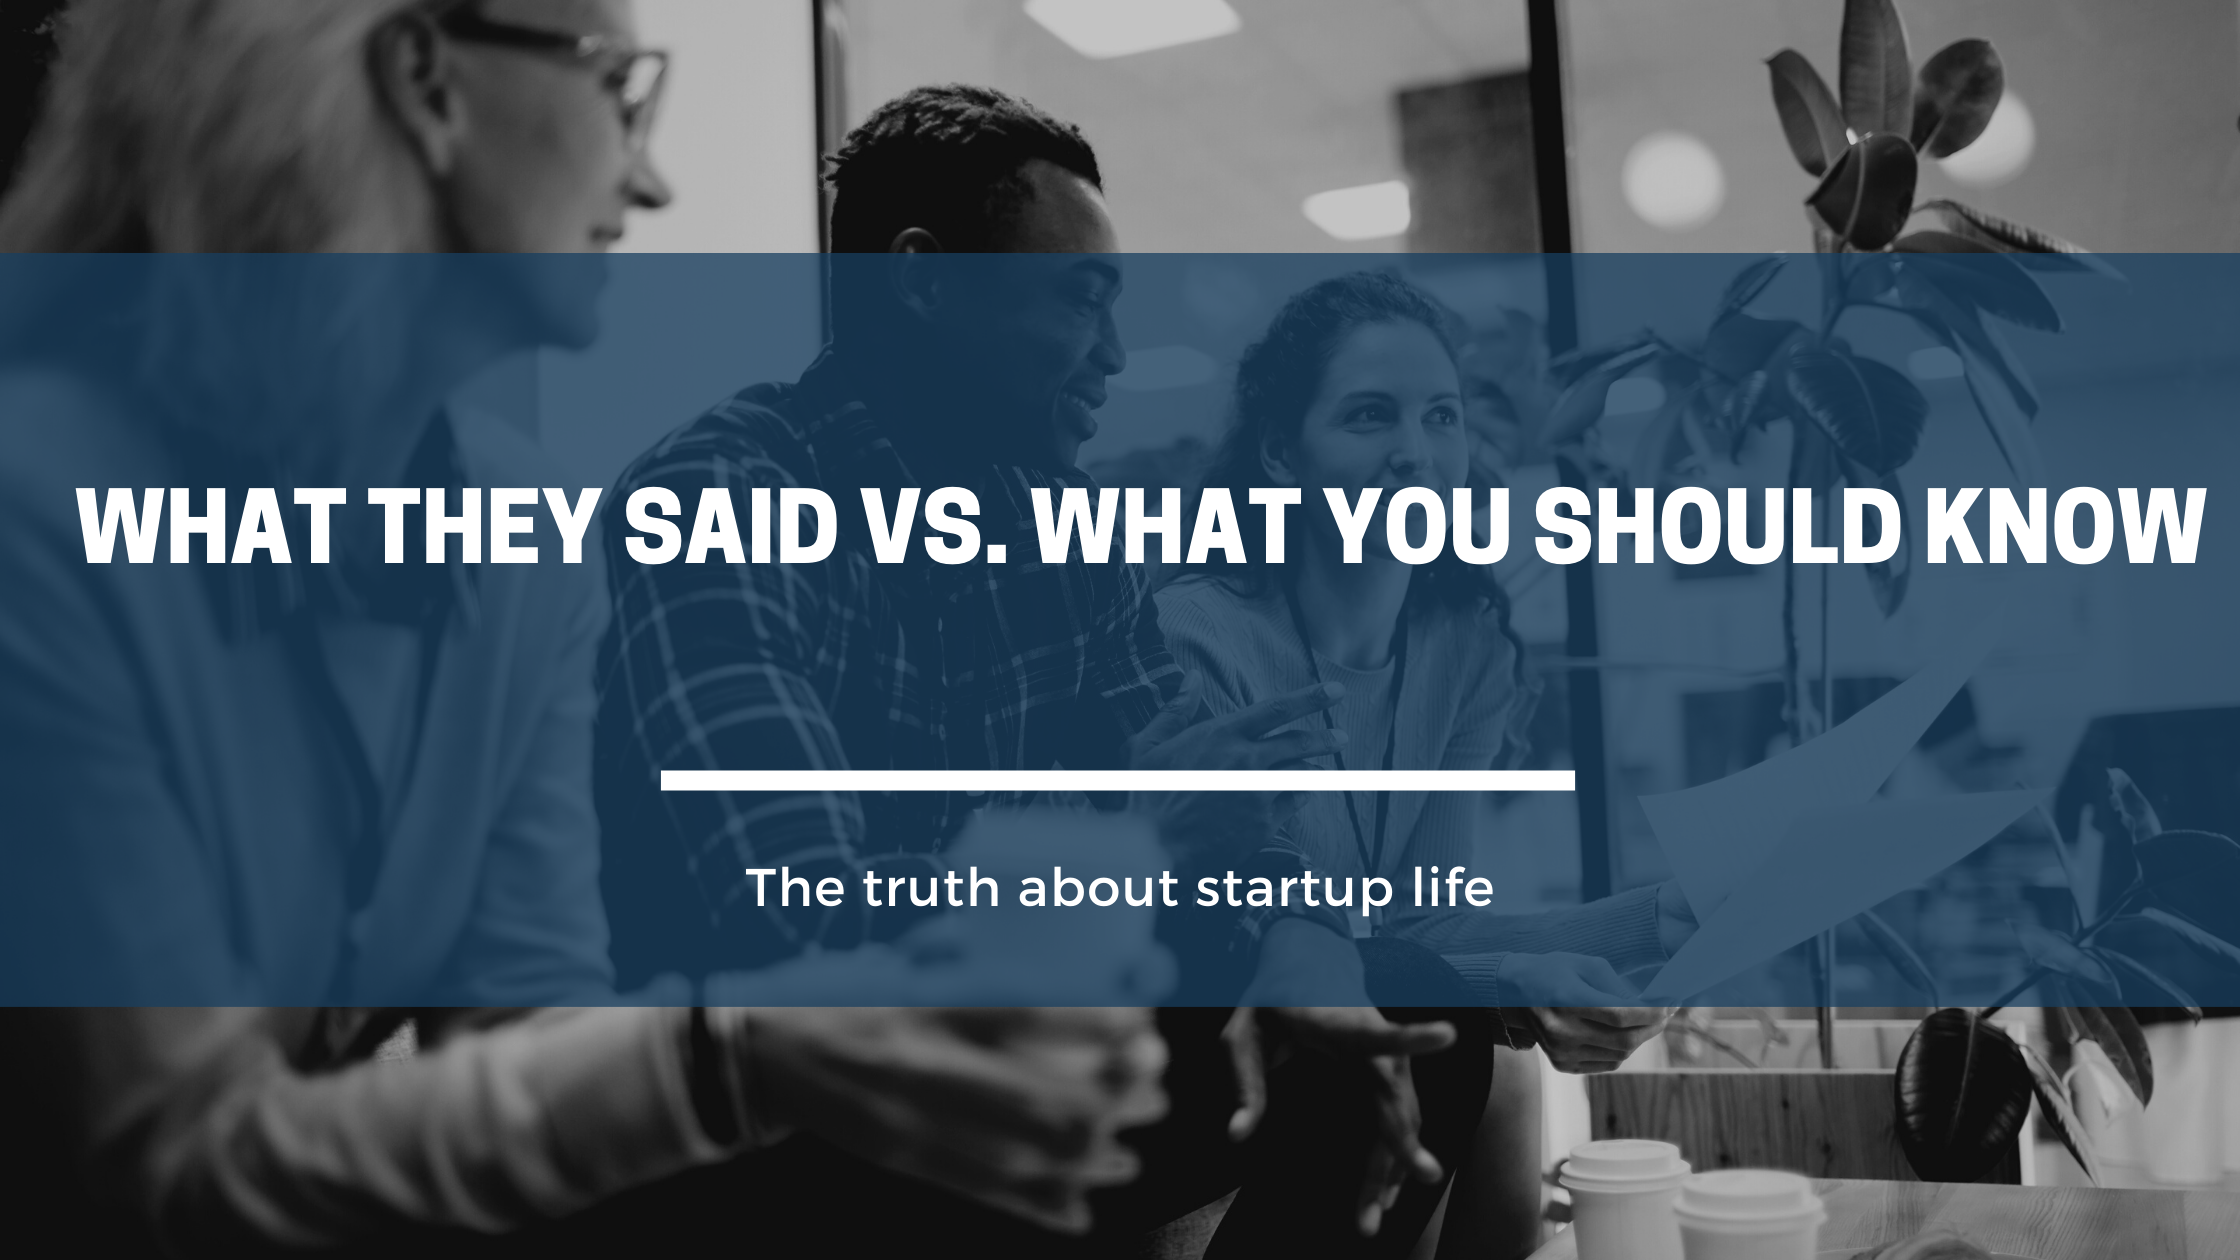 What They Said vs. What You Should Know